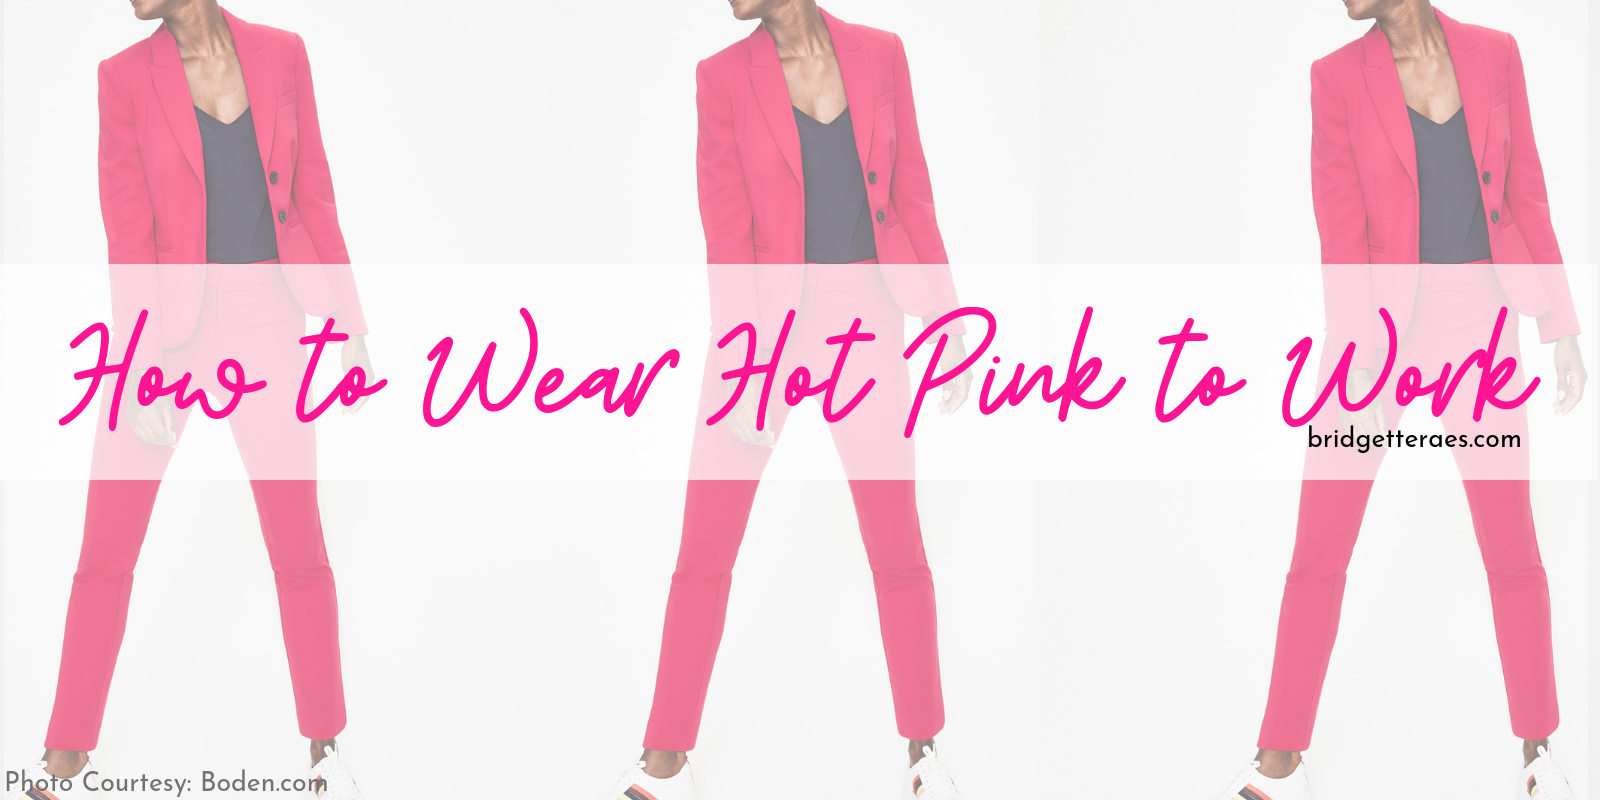 How To Wear Hot Pink to Work